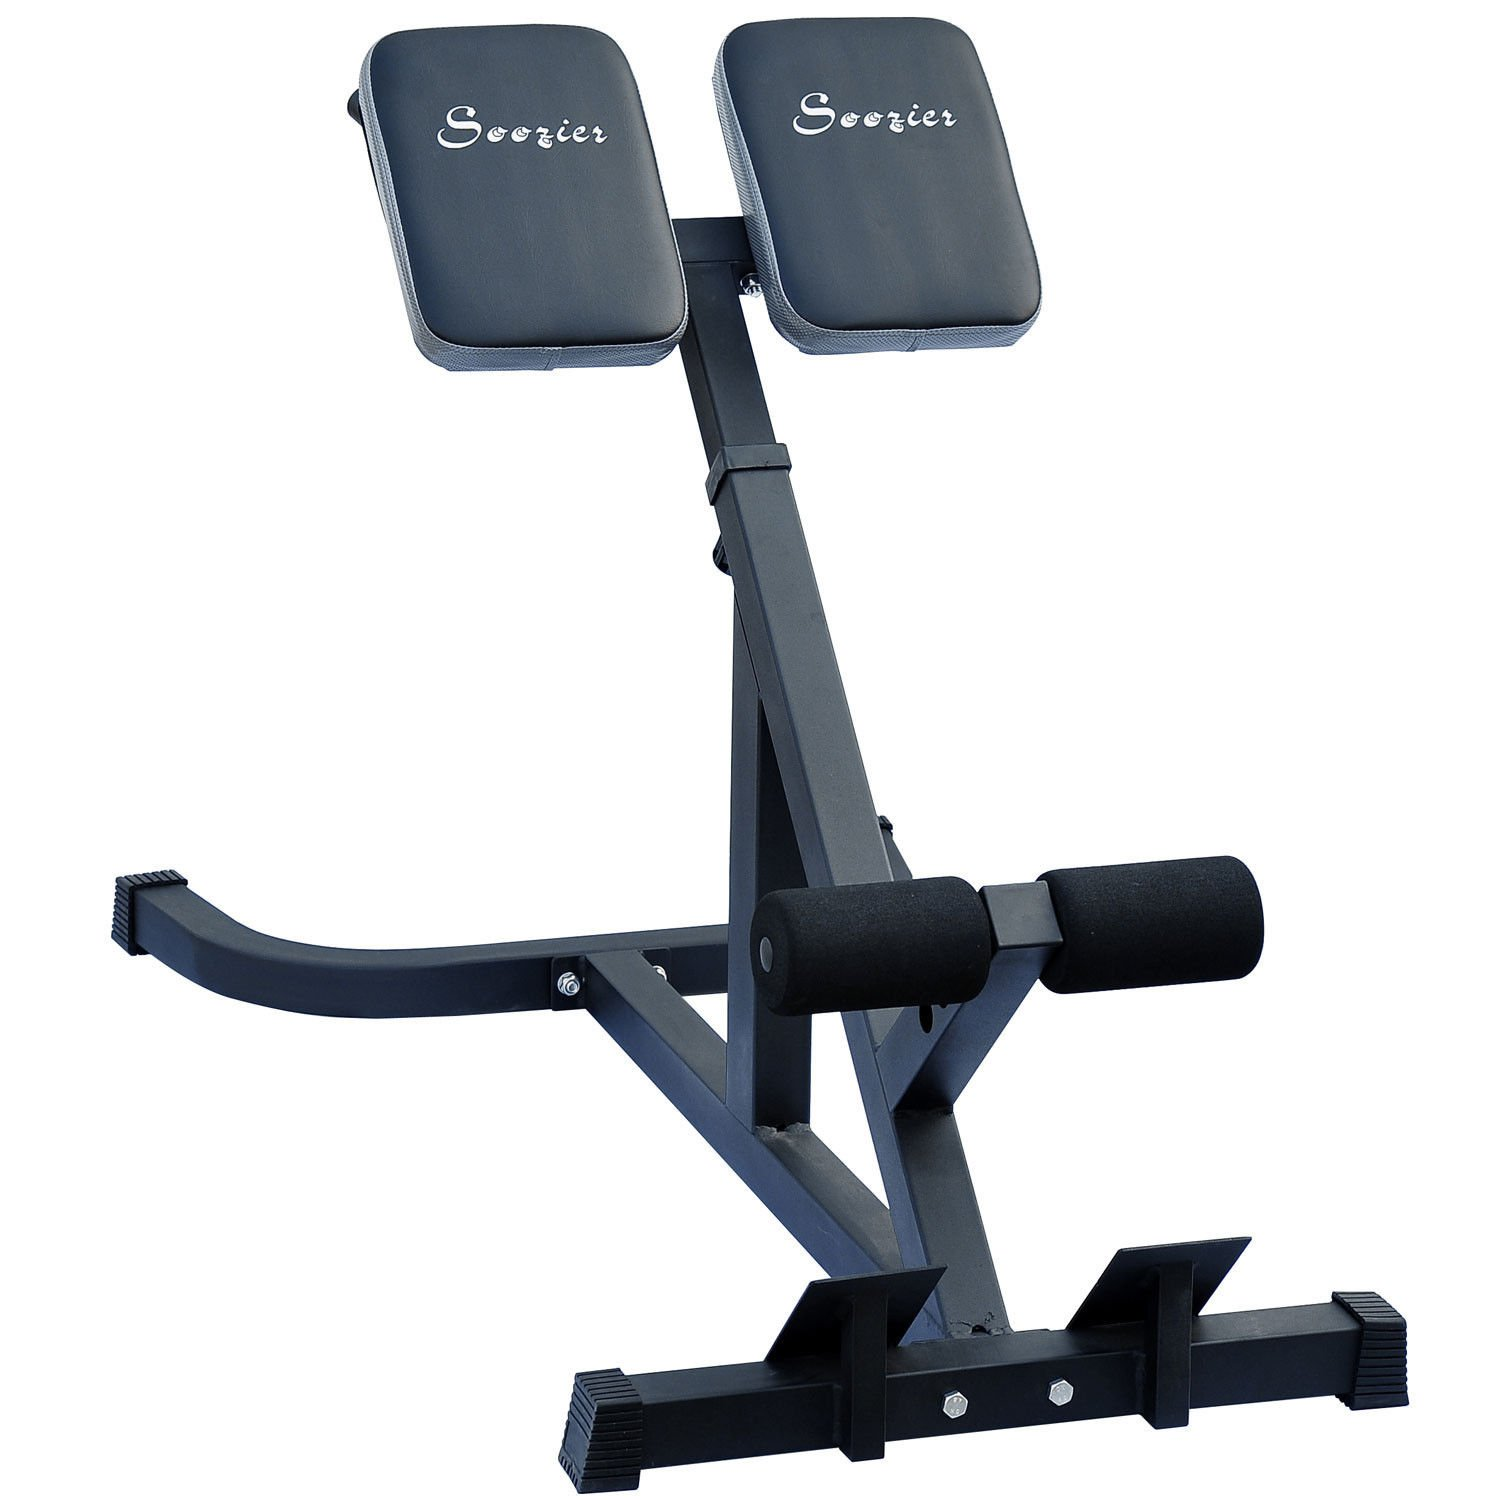 Soozier 45 Degree Hyperextension Roman Chair by Soozier